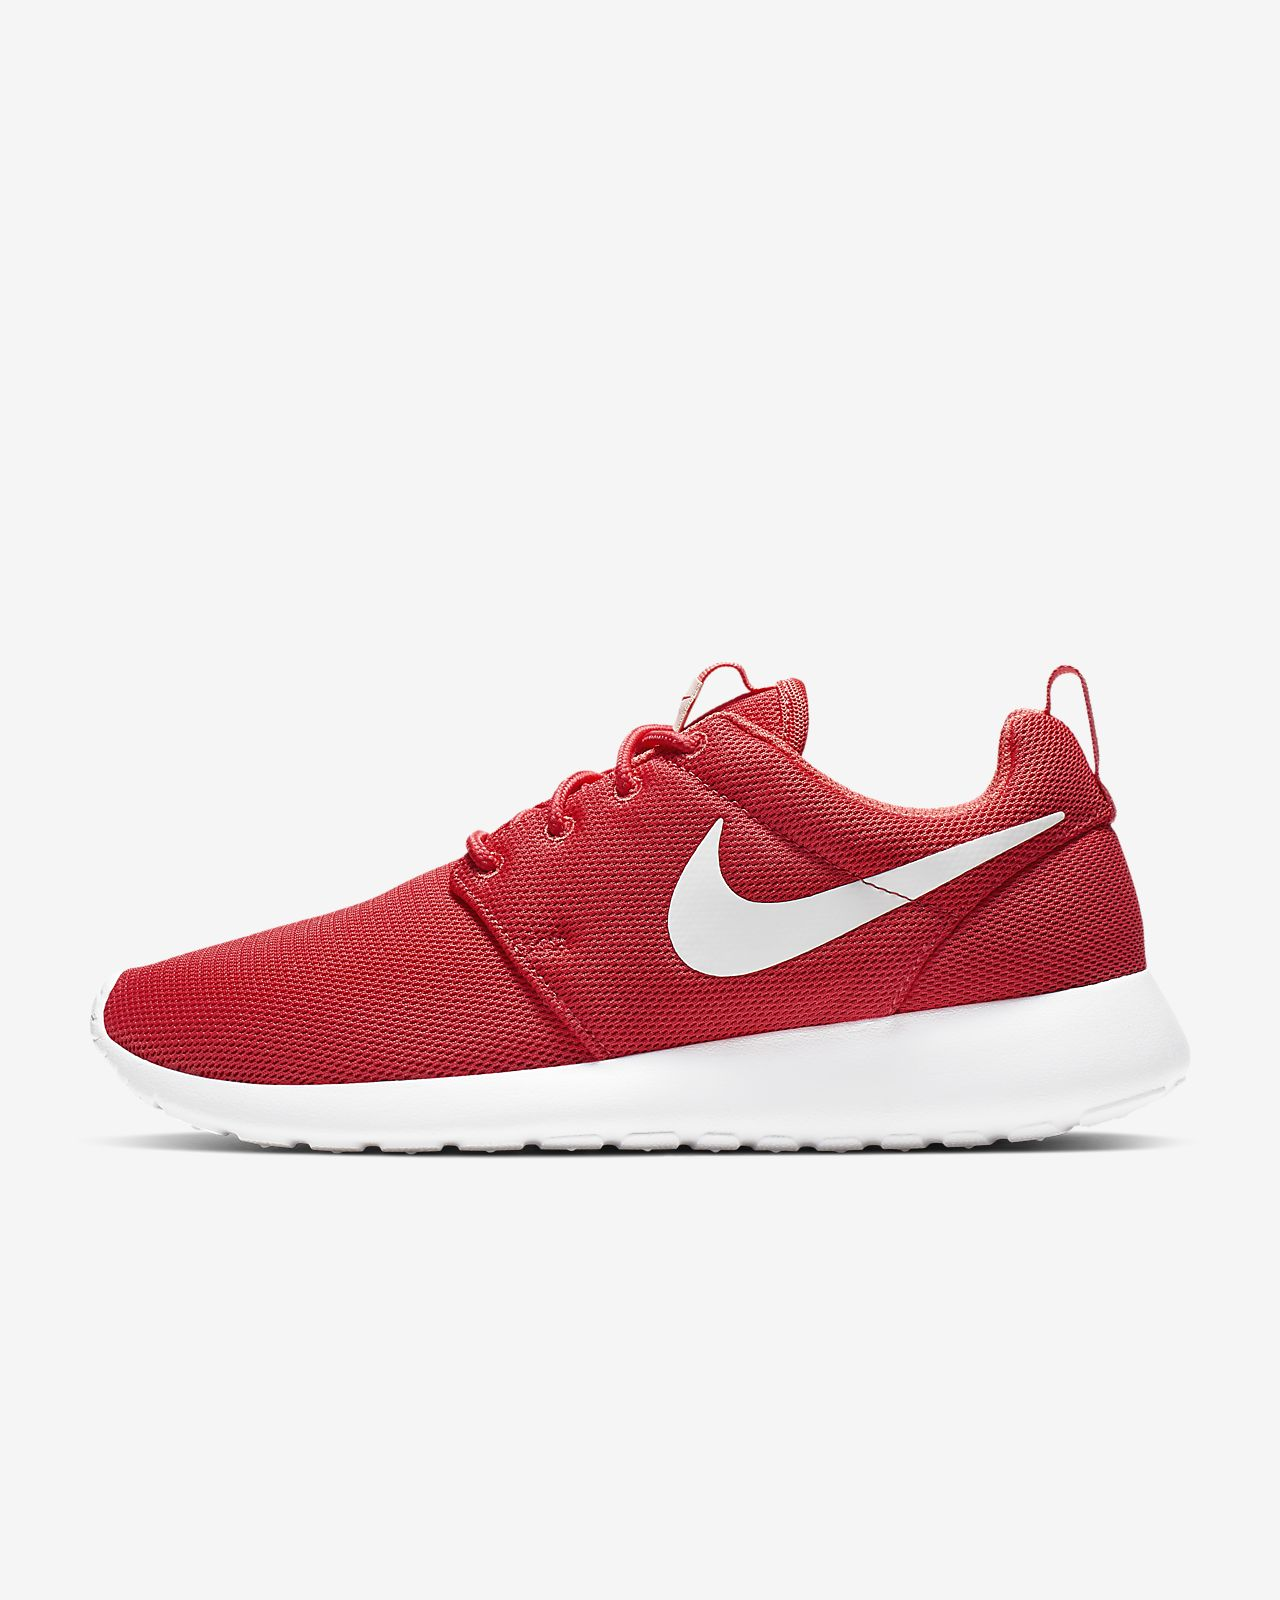 pretty nice f5bc1 7f653 Nike Roshe One Women s Shoe. Nike.com